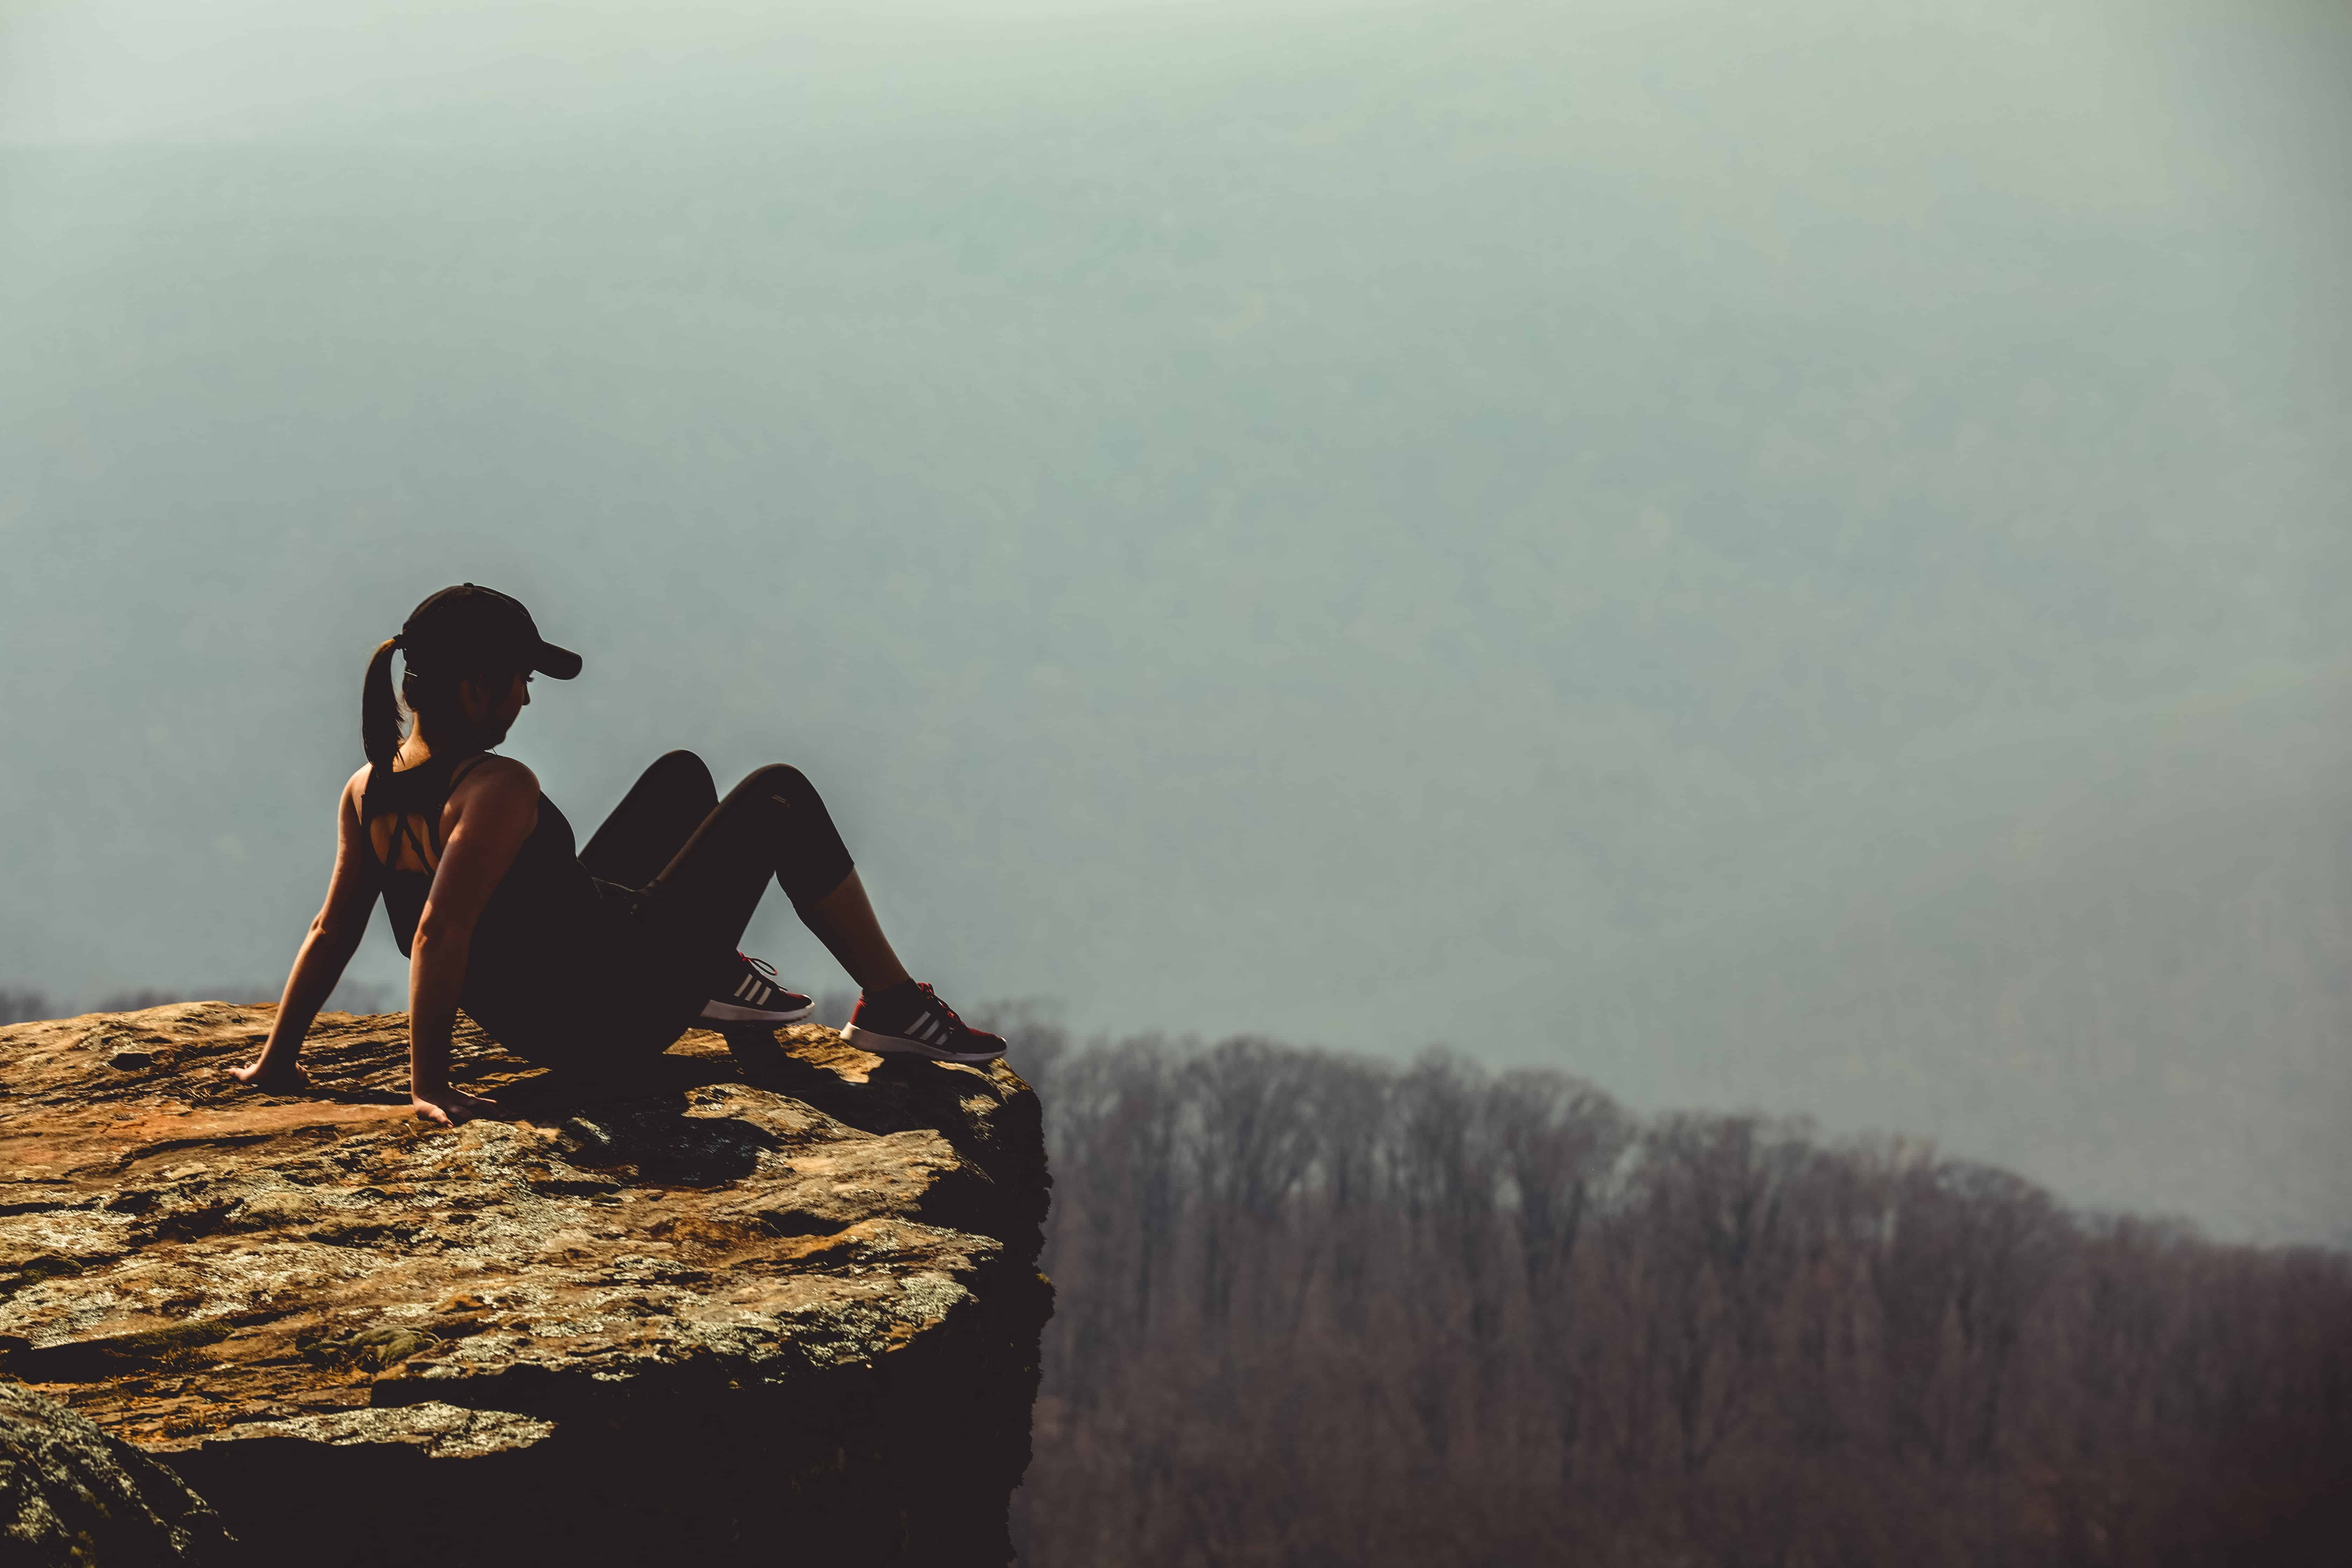 A woman siting on the edge of a cliff taking a risk.